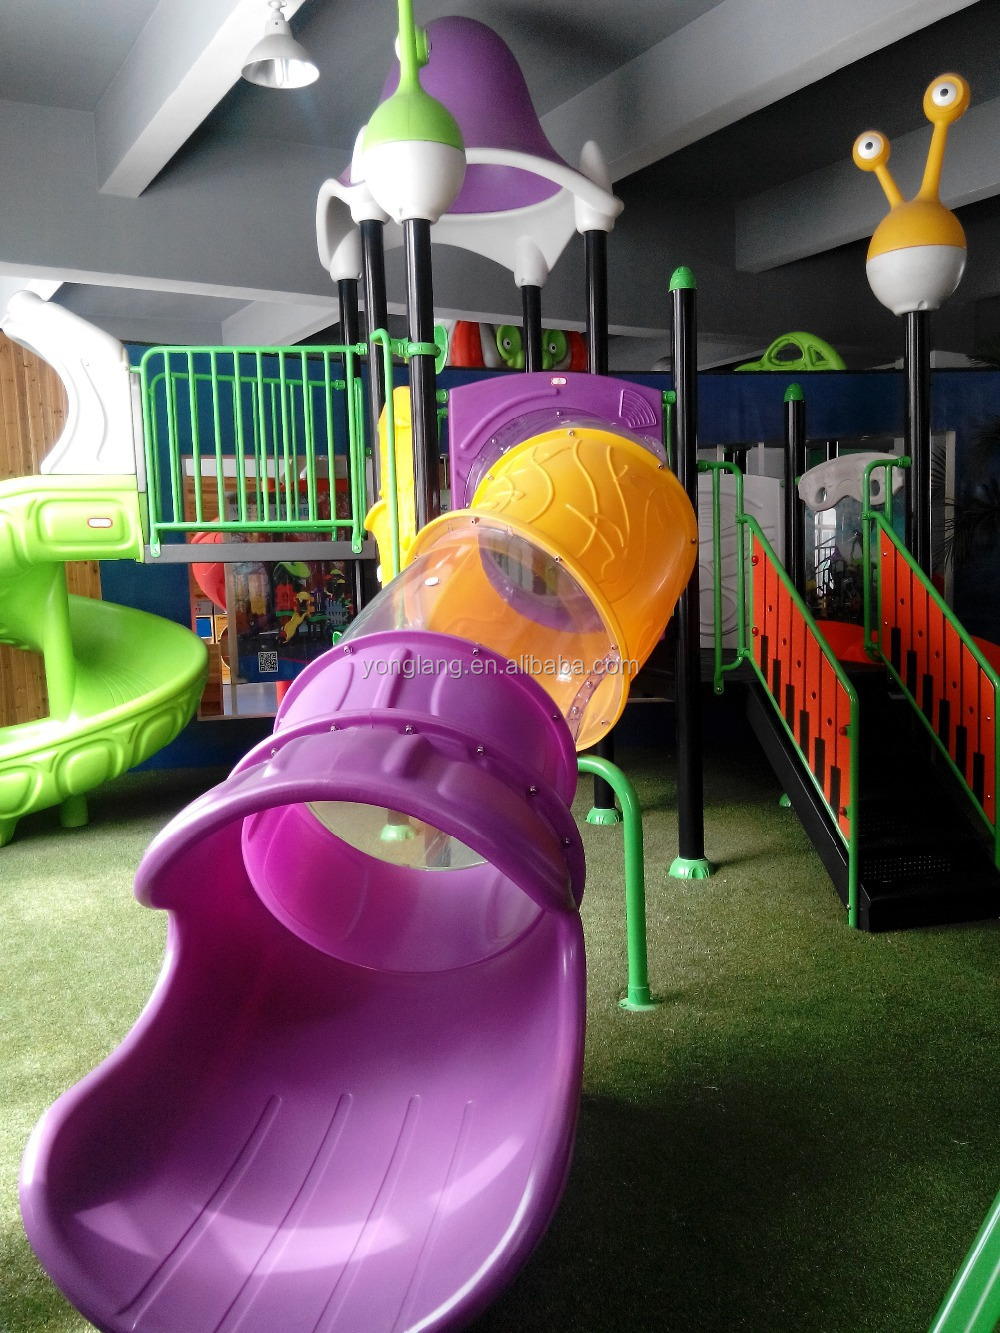 Ihram Kids For Sale Dubai: Child Game Kids Used Indoor Playground Equipment For Sale